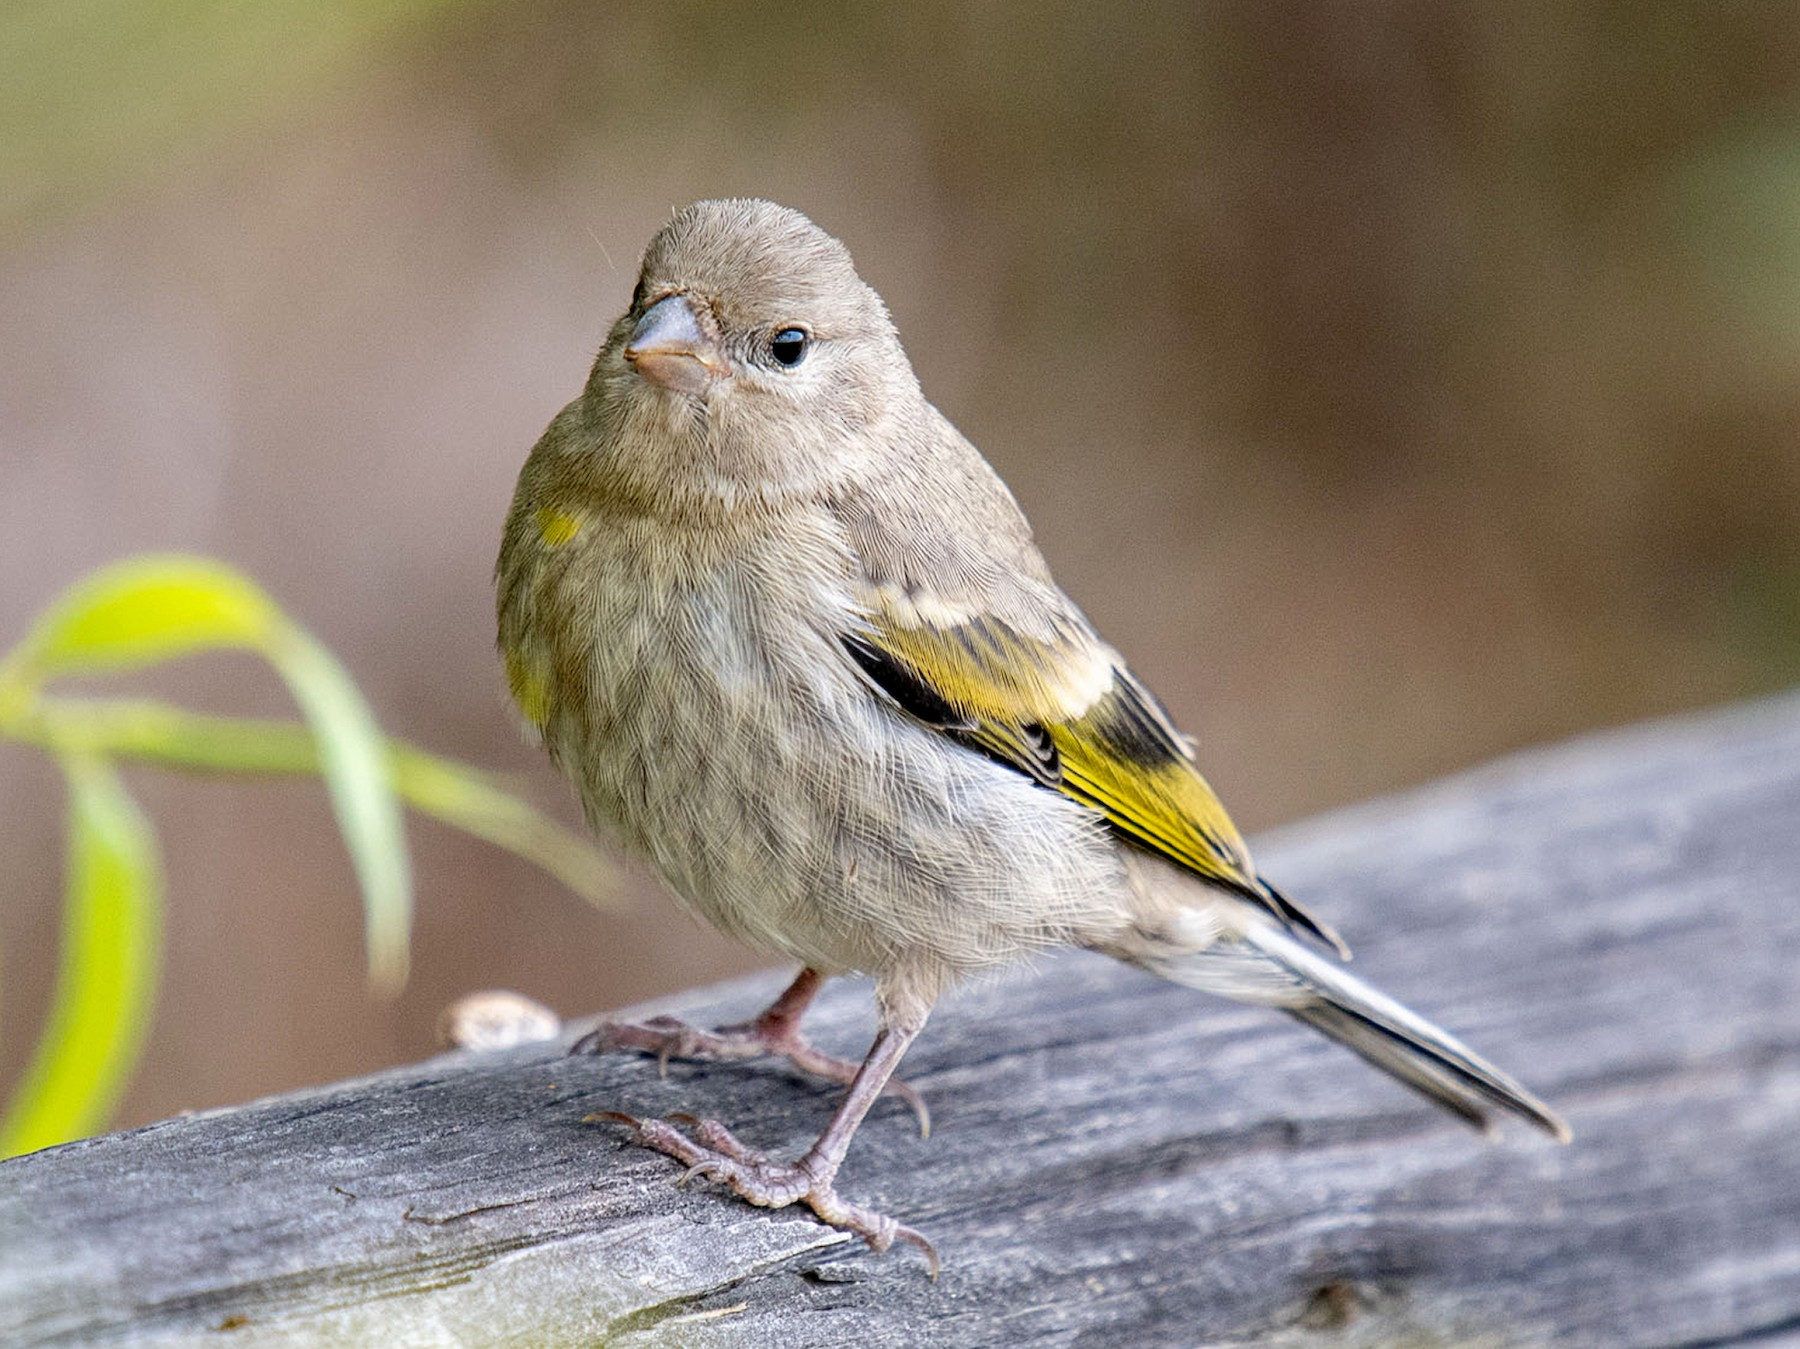 Lawrence's Goldfinch - Andrew Newmark